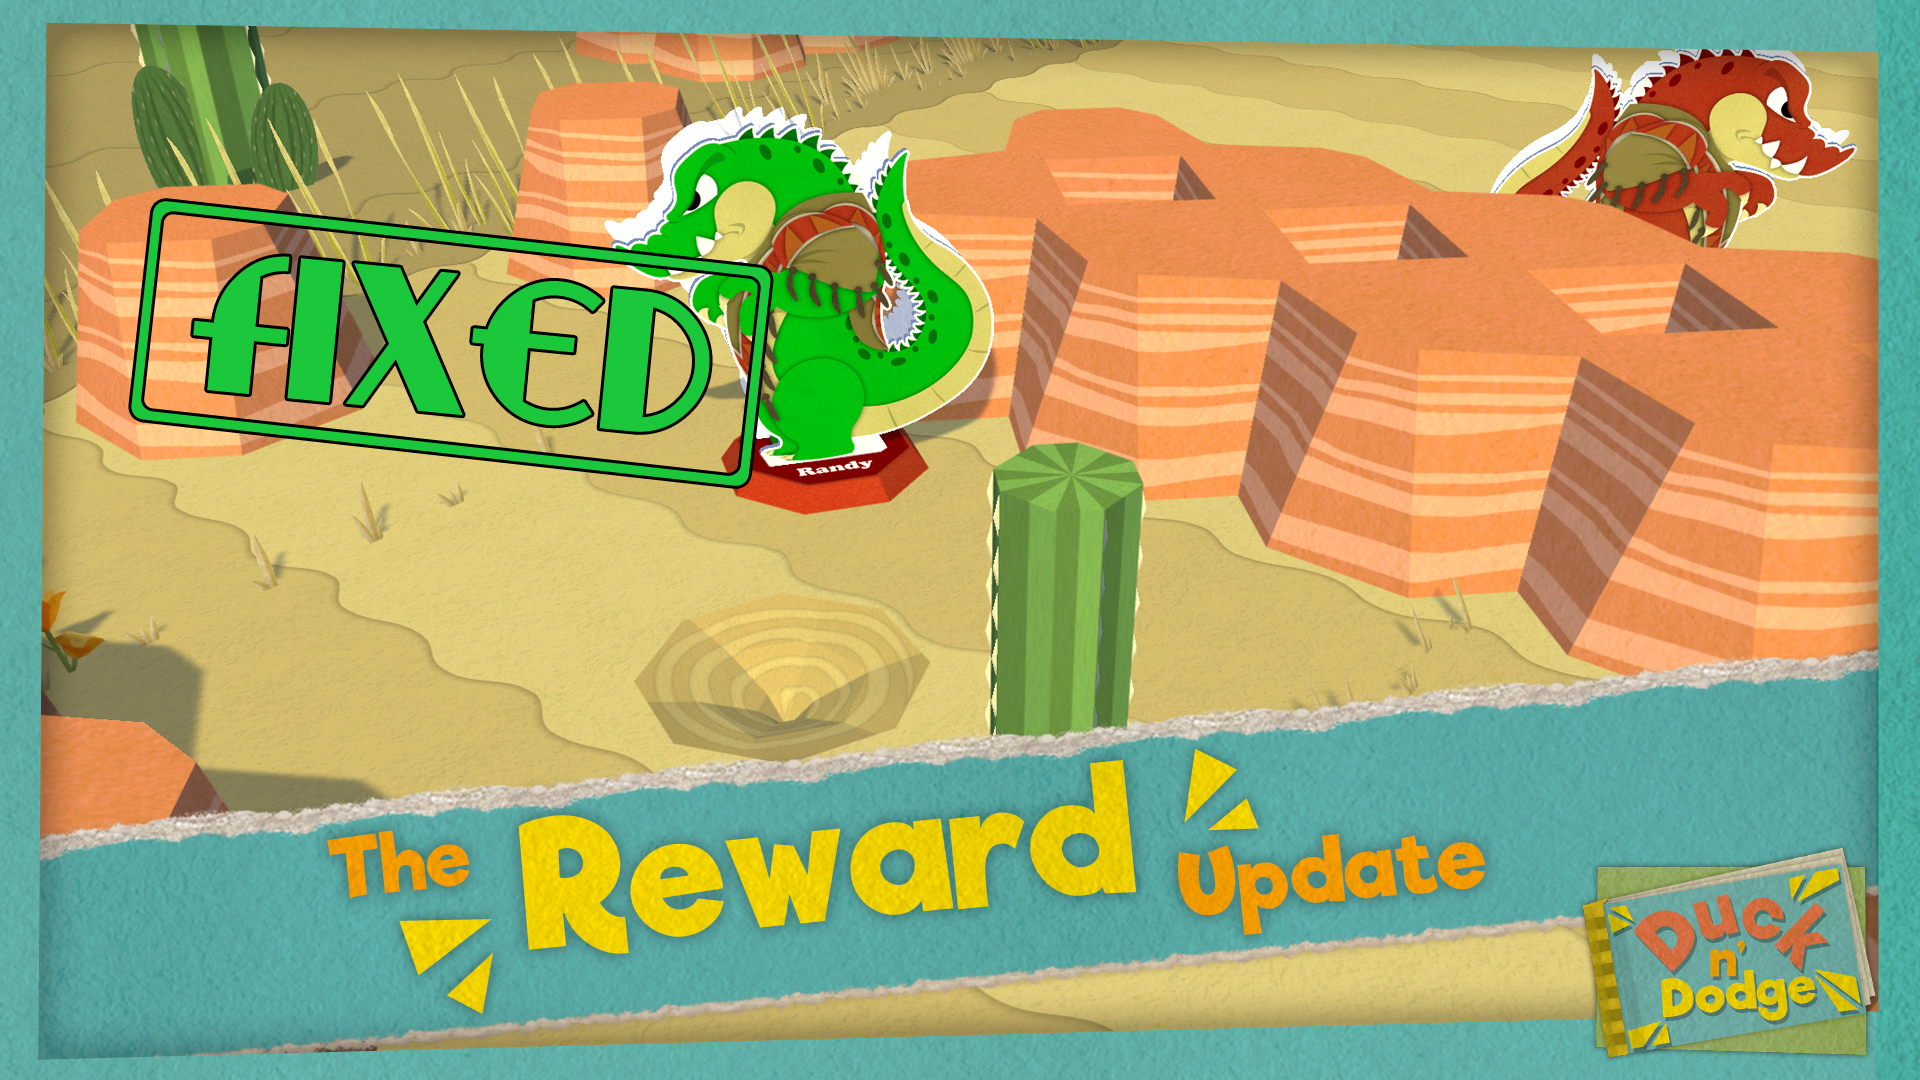 The Reward update fixed